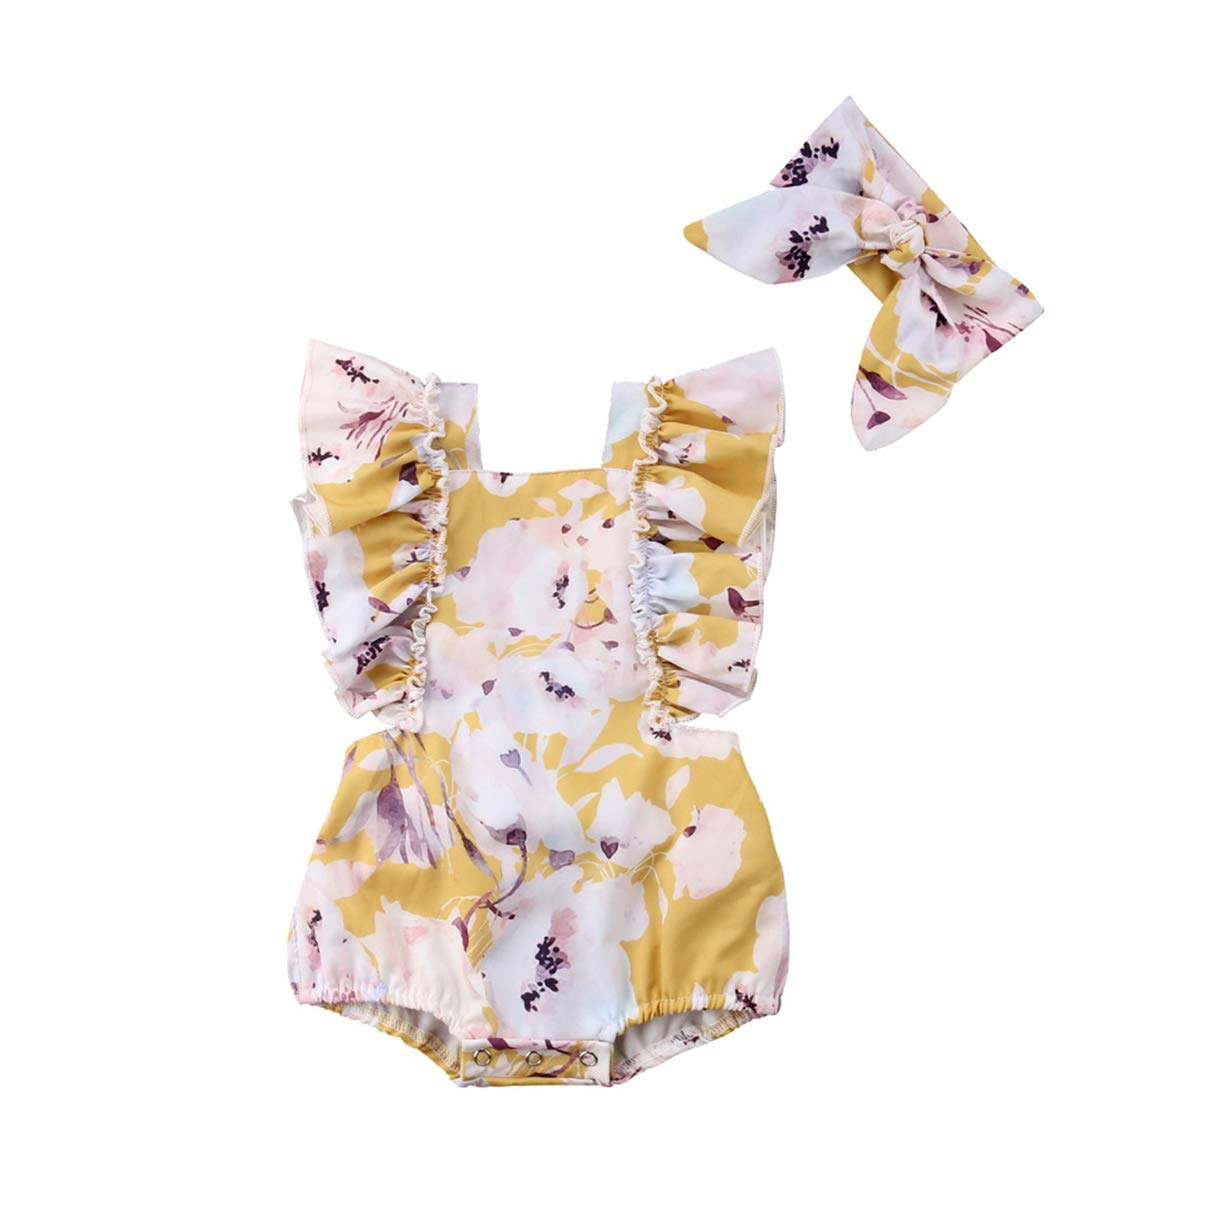 Cute Floral Jumpsuit Bodysuit Playwear naughty kiss 0-24 Months Infant Baby Girls Ruffle Romper BowKot Headband